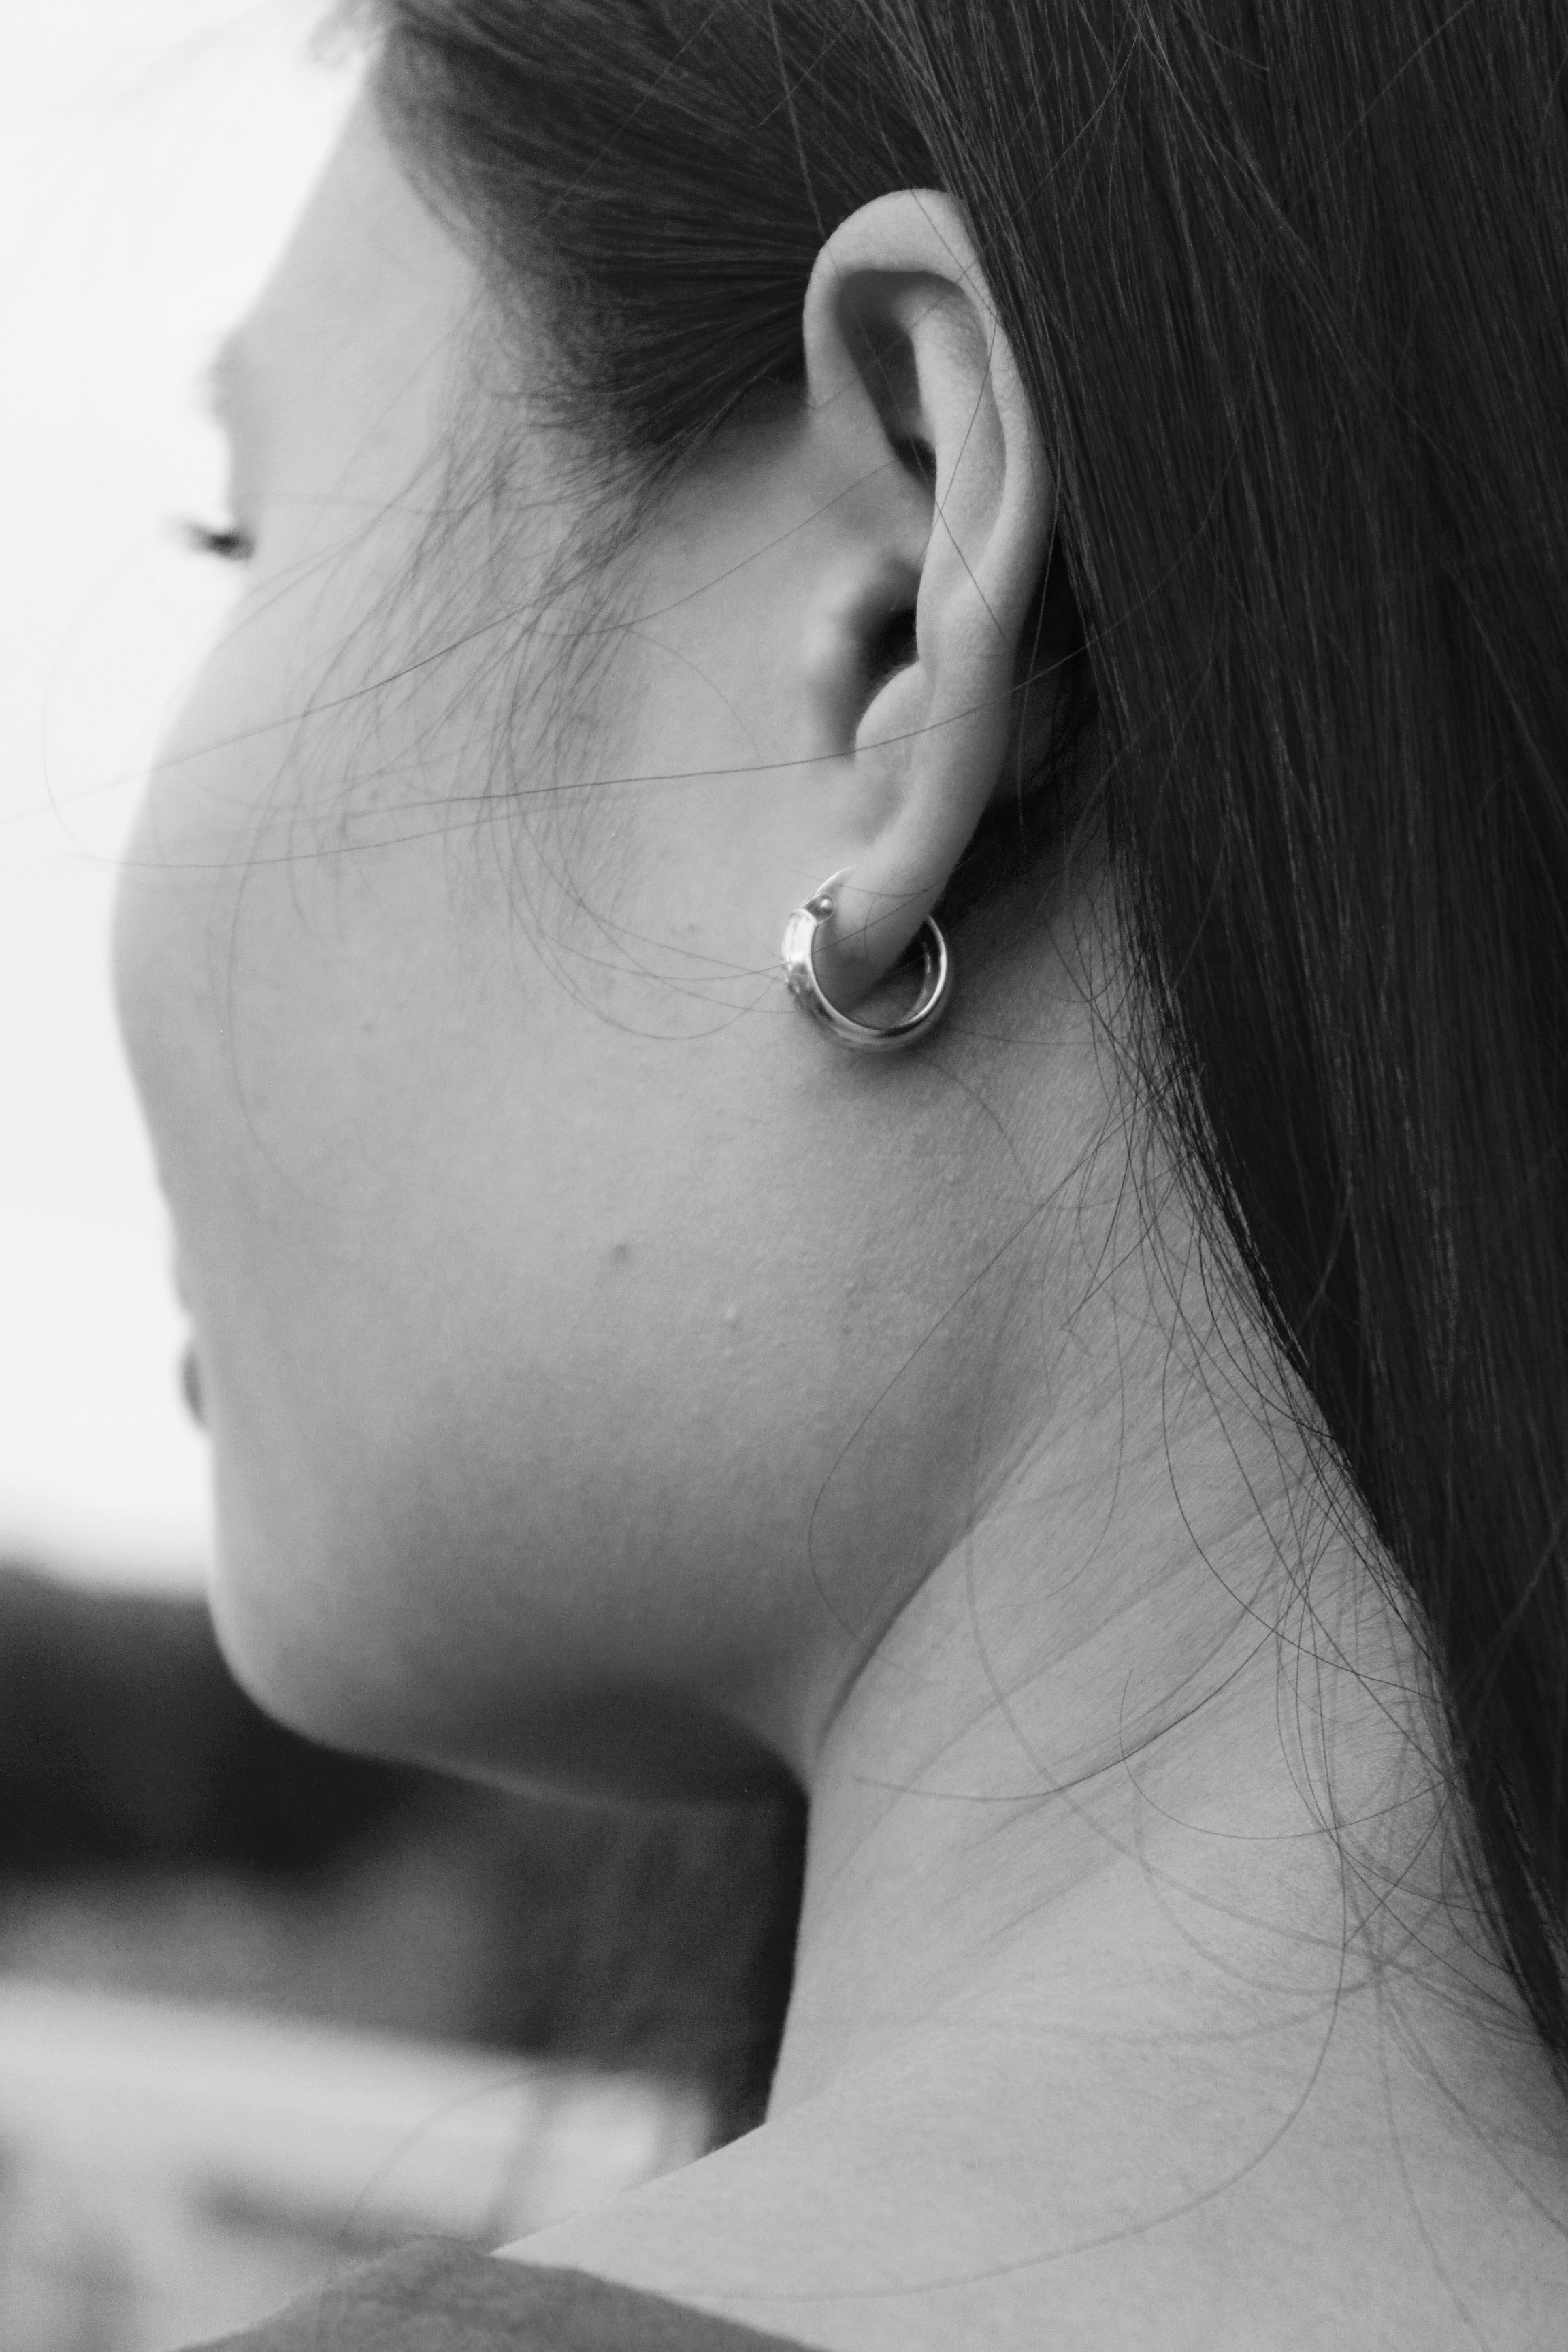 Close-up of woman's ear